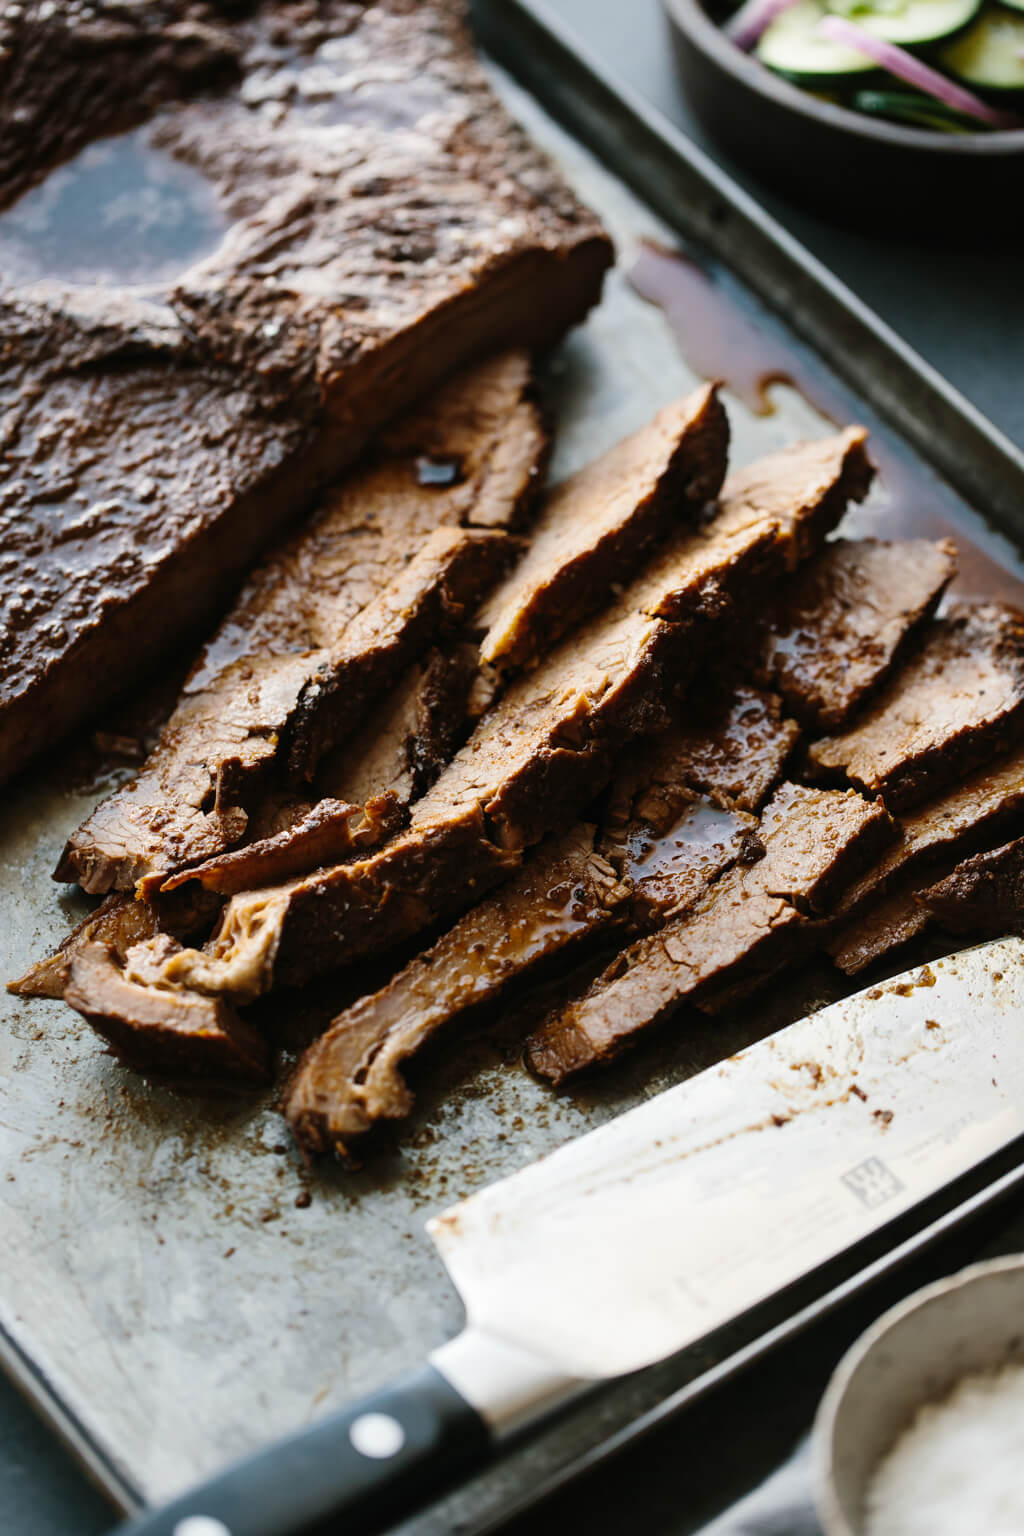 An easy, oven braised brisket that's the perfect combination of sweet and smoky. After a few hours in the oven, you'll have juicy, tender beef brisket.